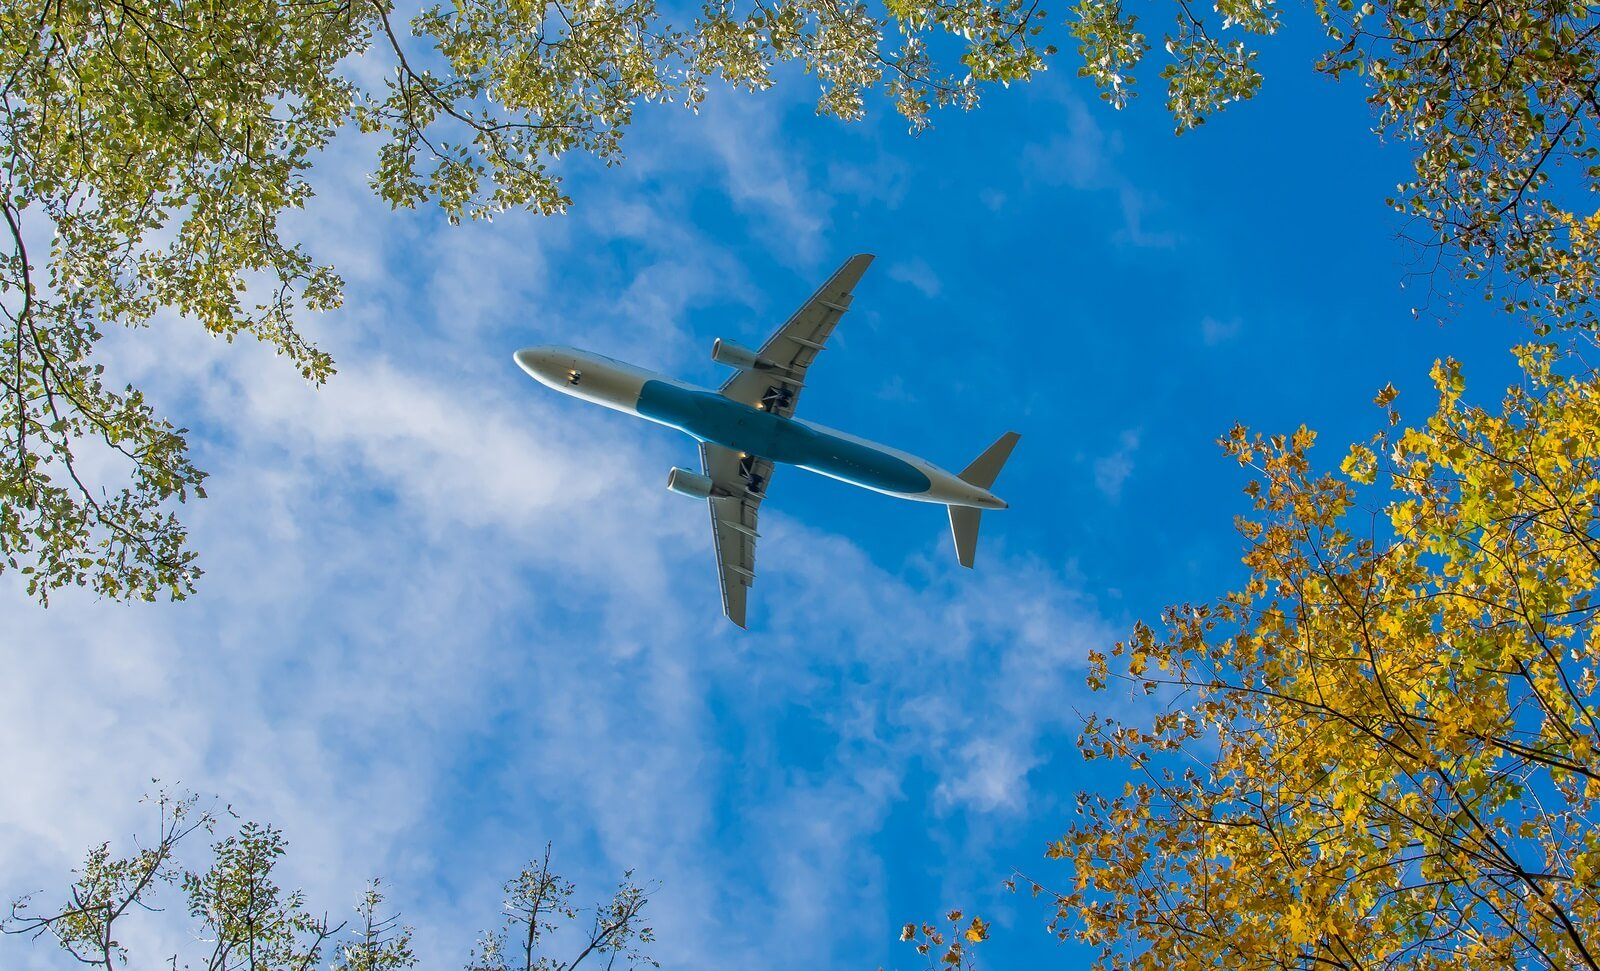 What is the role of government in green aviation?